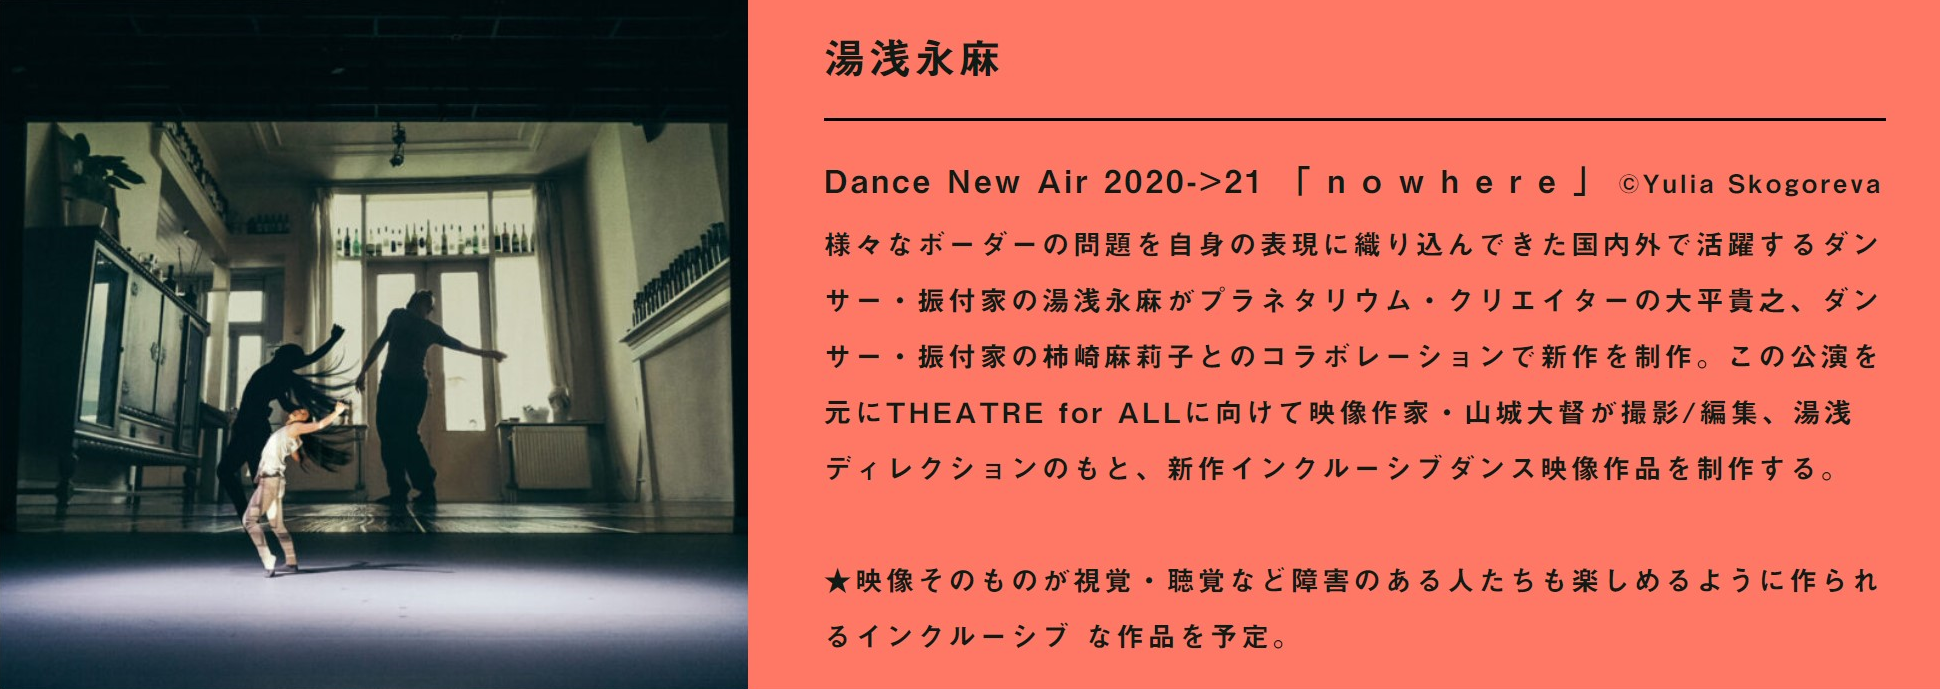 湯浅永麻「Dance New Air 2020->21    n o w h e r e」